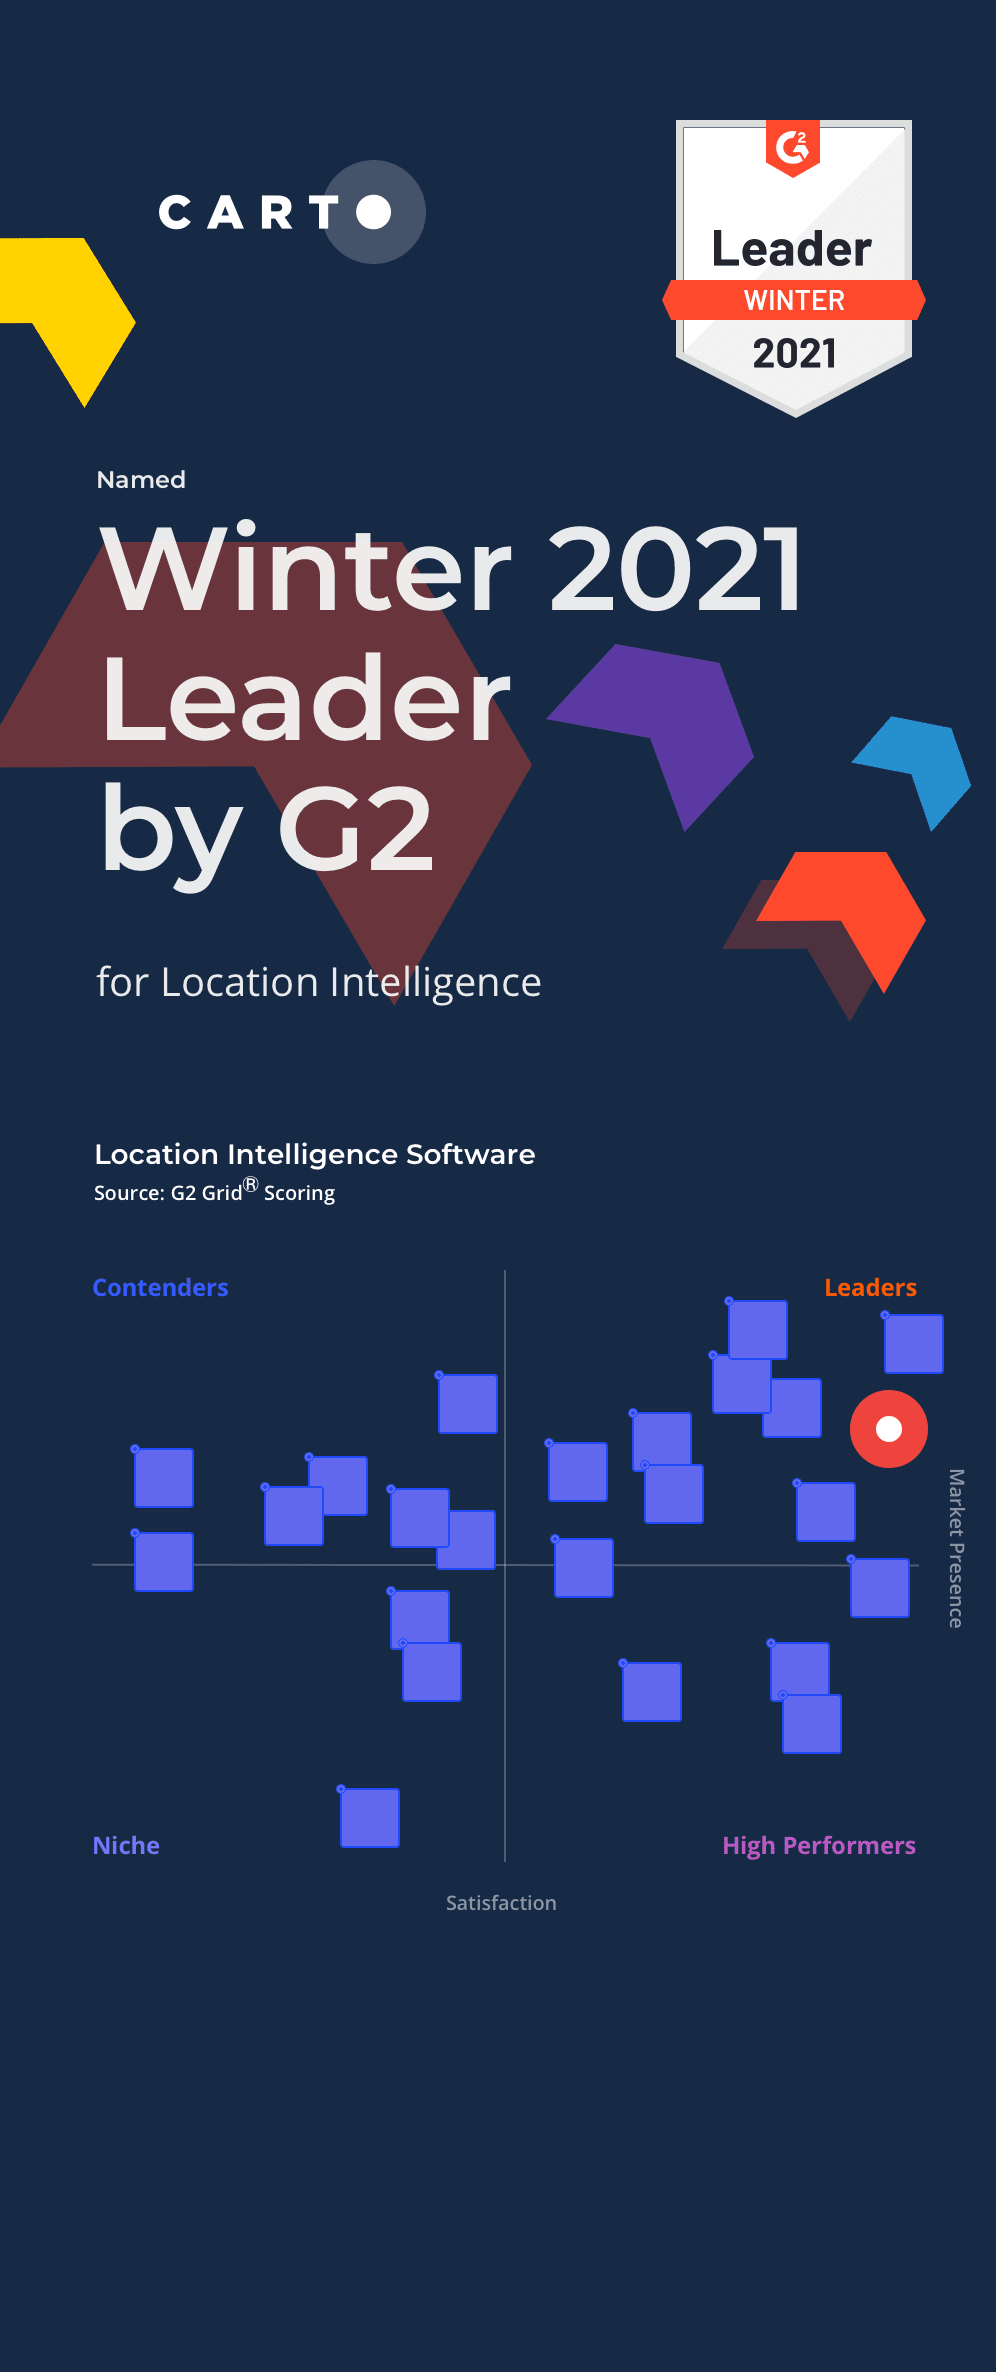 Winter 2021 Leader by G2 for Location Intelligence